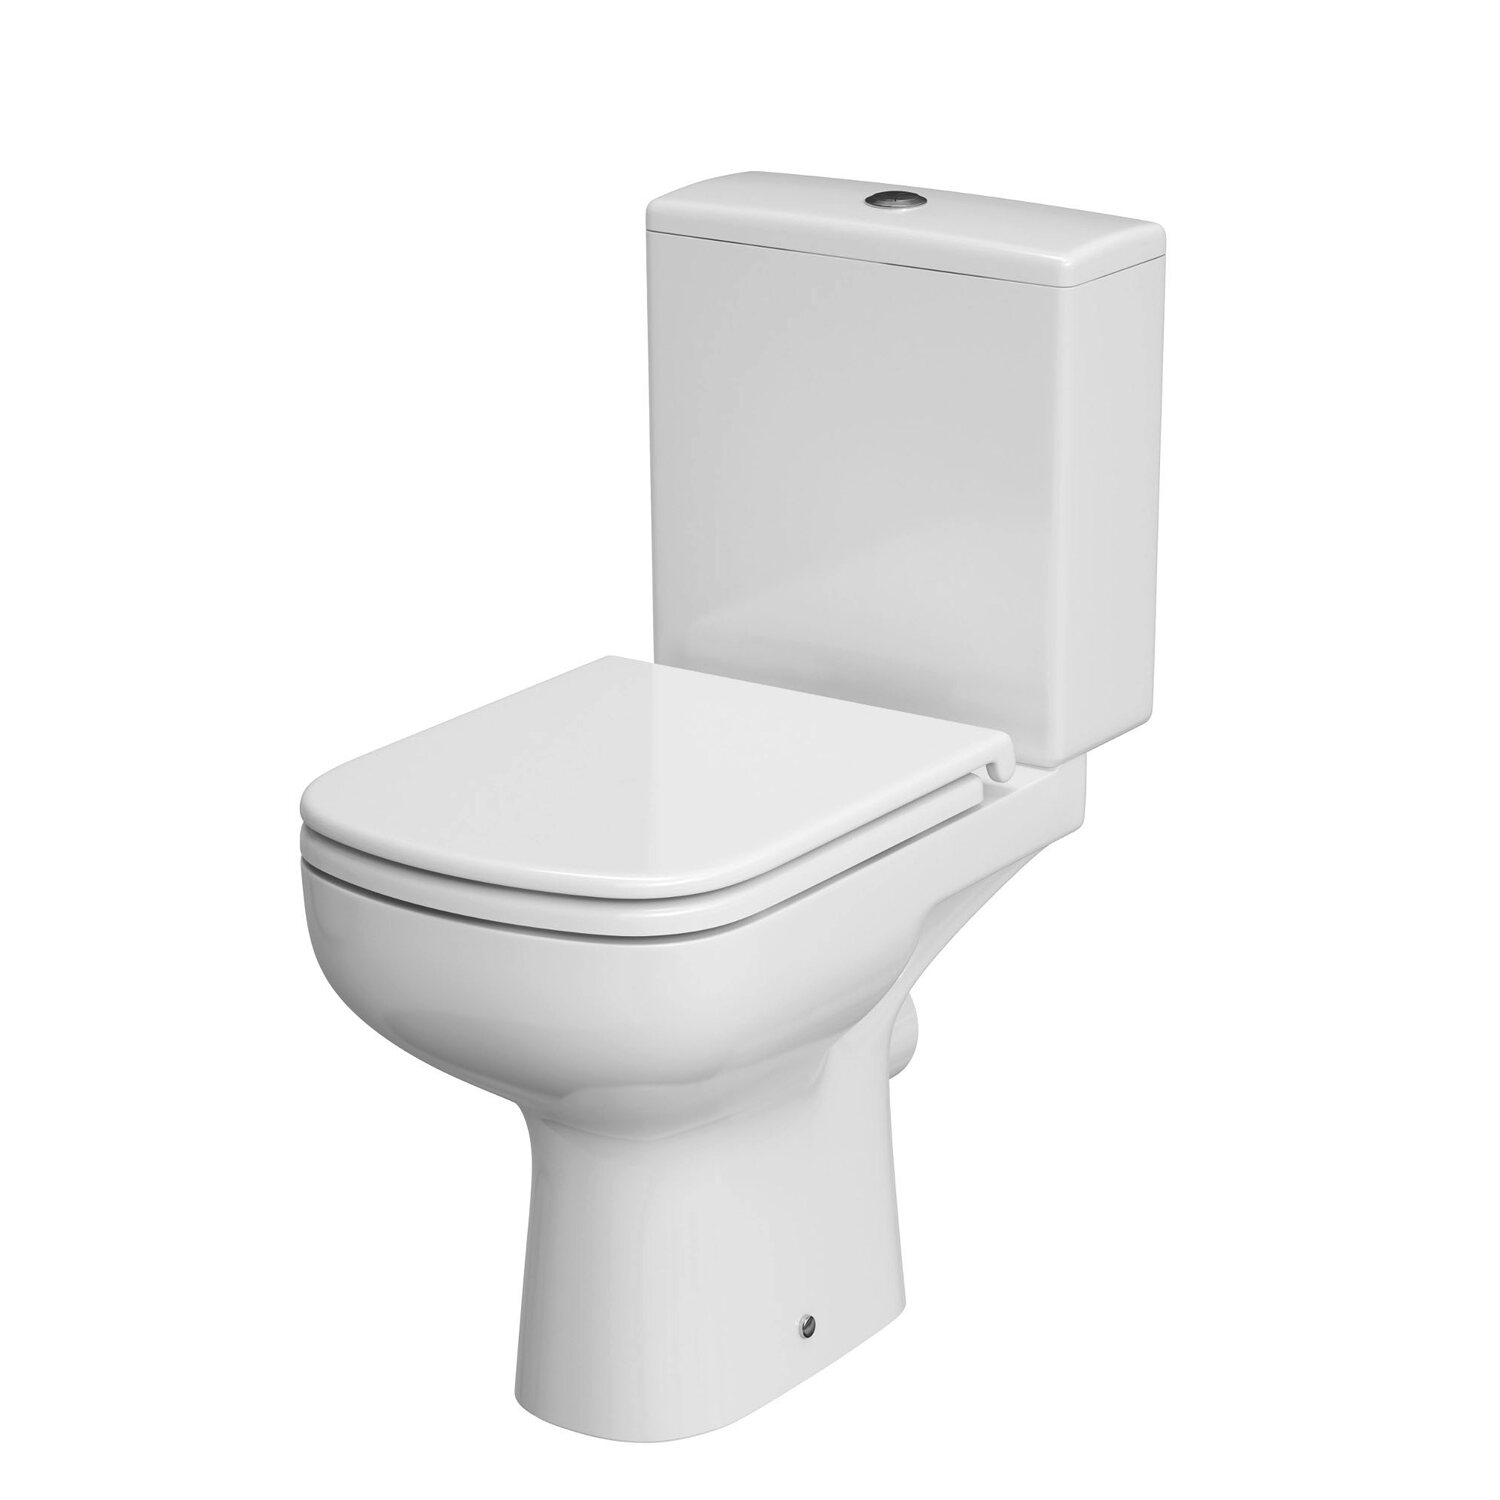 Cersanit kompakt wc colour cleanon z desk kupuj w obi - Wc c olour grijze ...